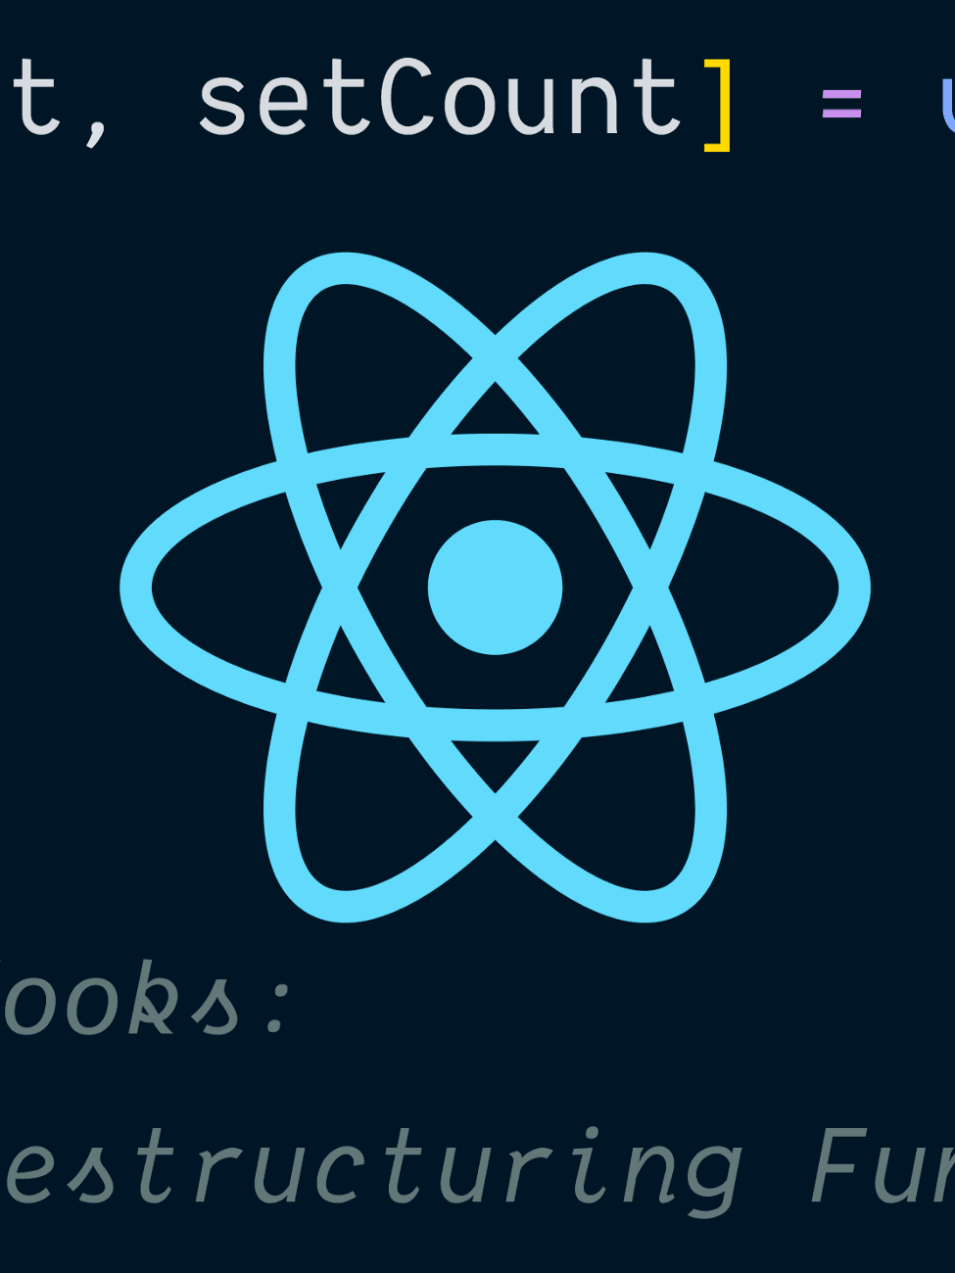 I made this all by myself... Well... Except for [the react logo](https://arcweb.co/is-react-native-a-viable-framework-for-financial-applications/react-logo-1000-transparent)... [And the font... and the theme.](https://kcd.im/mft)